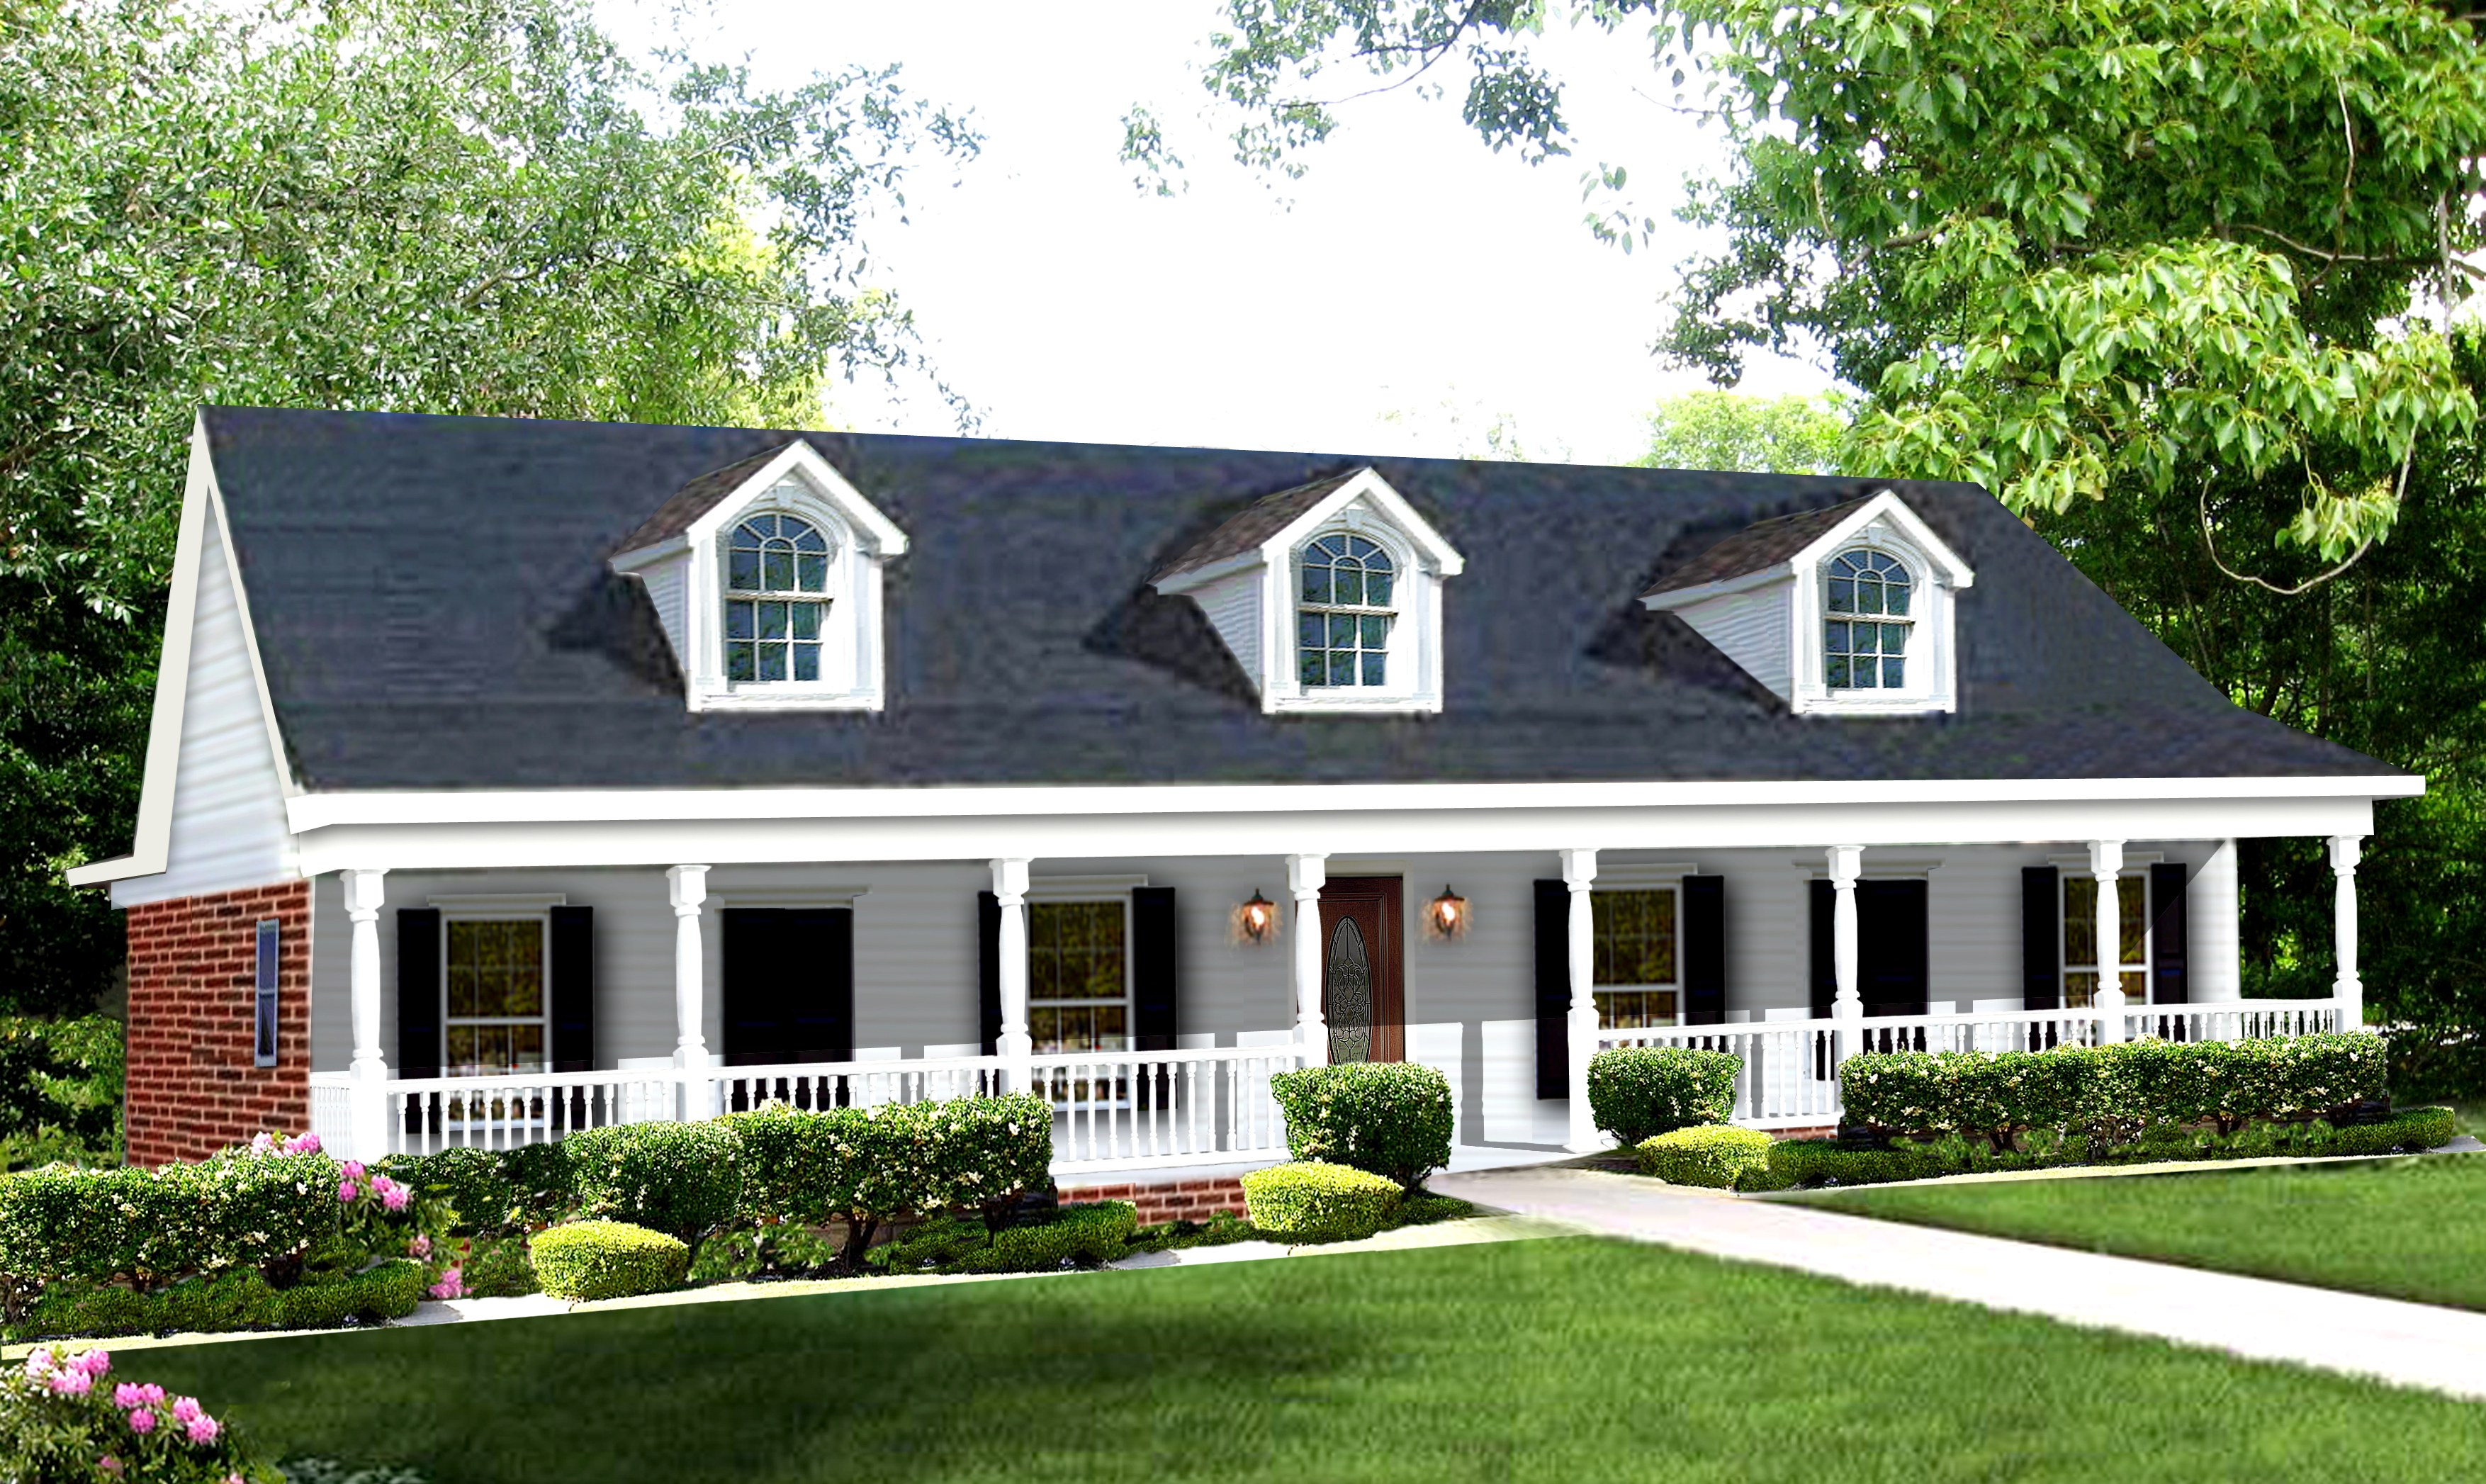 charming country house plan #10: #123-1039 · Color rendering of house plan #123-1039